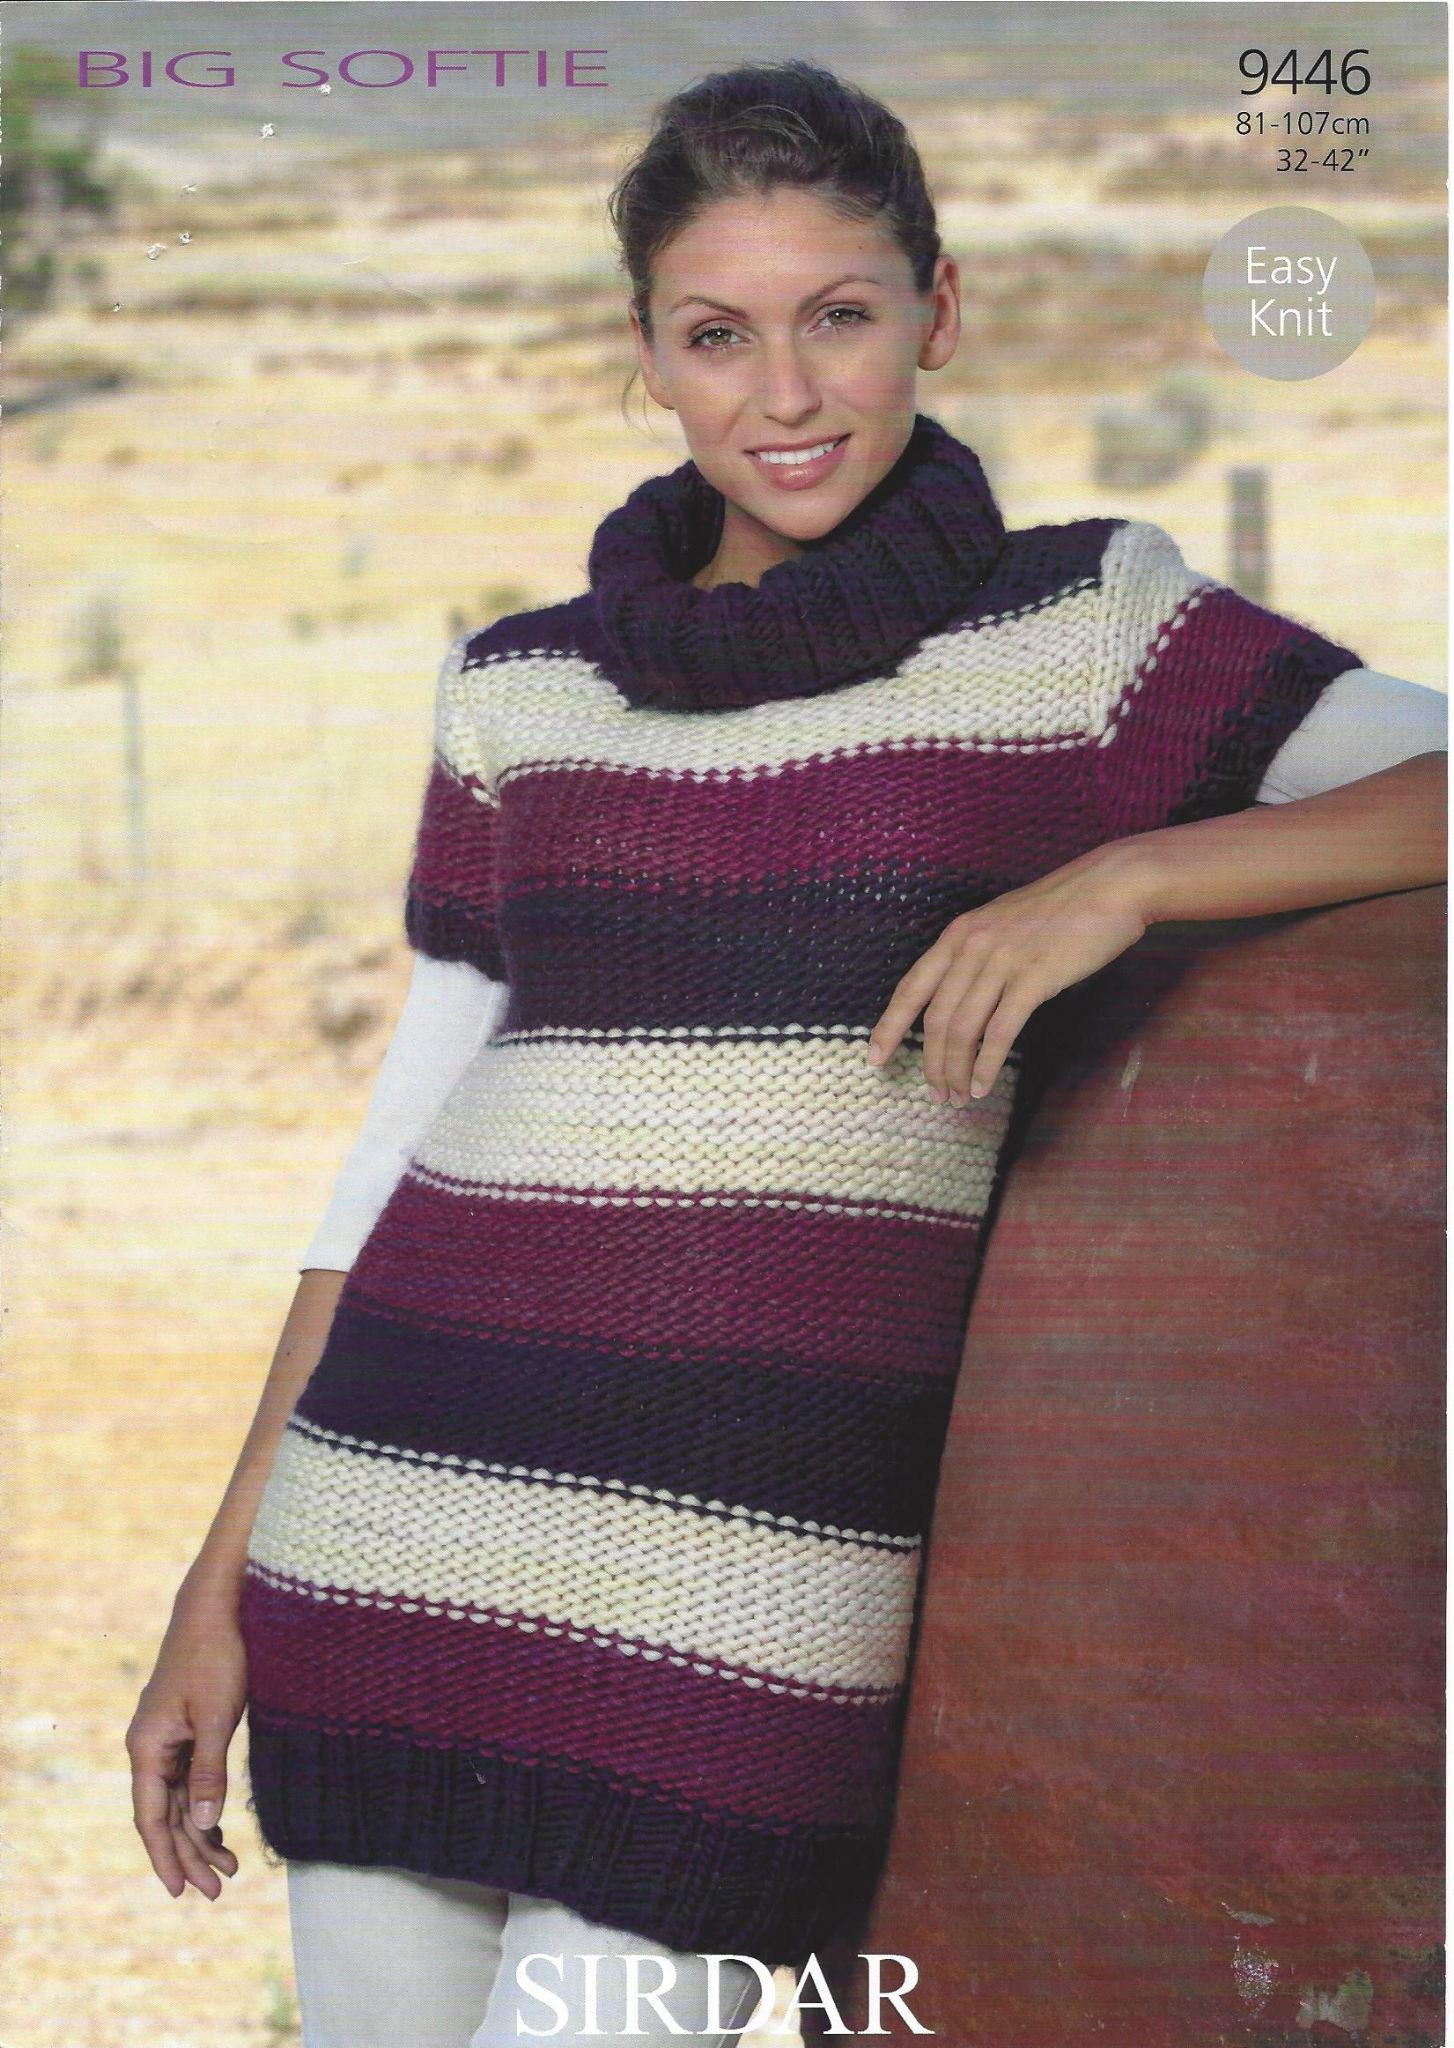 Enchanting Tunic Knitting Patterns Image - Sewing Pattern for ...